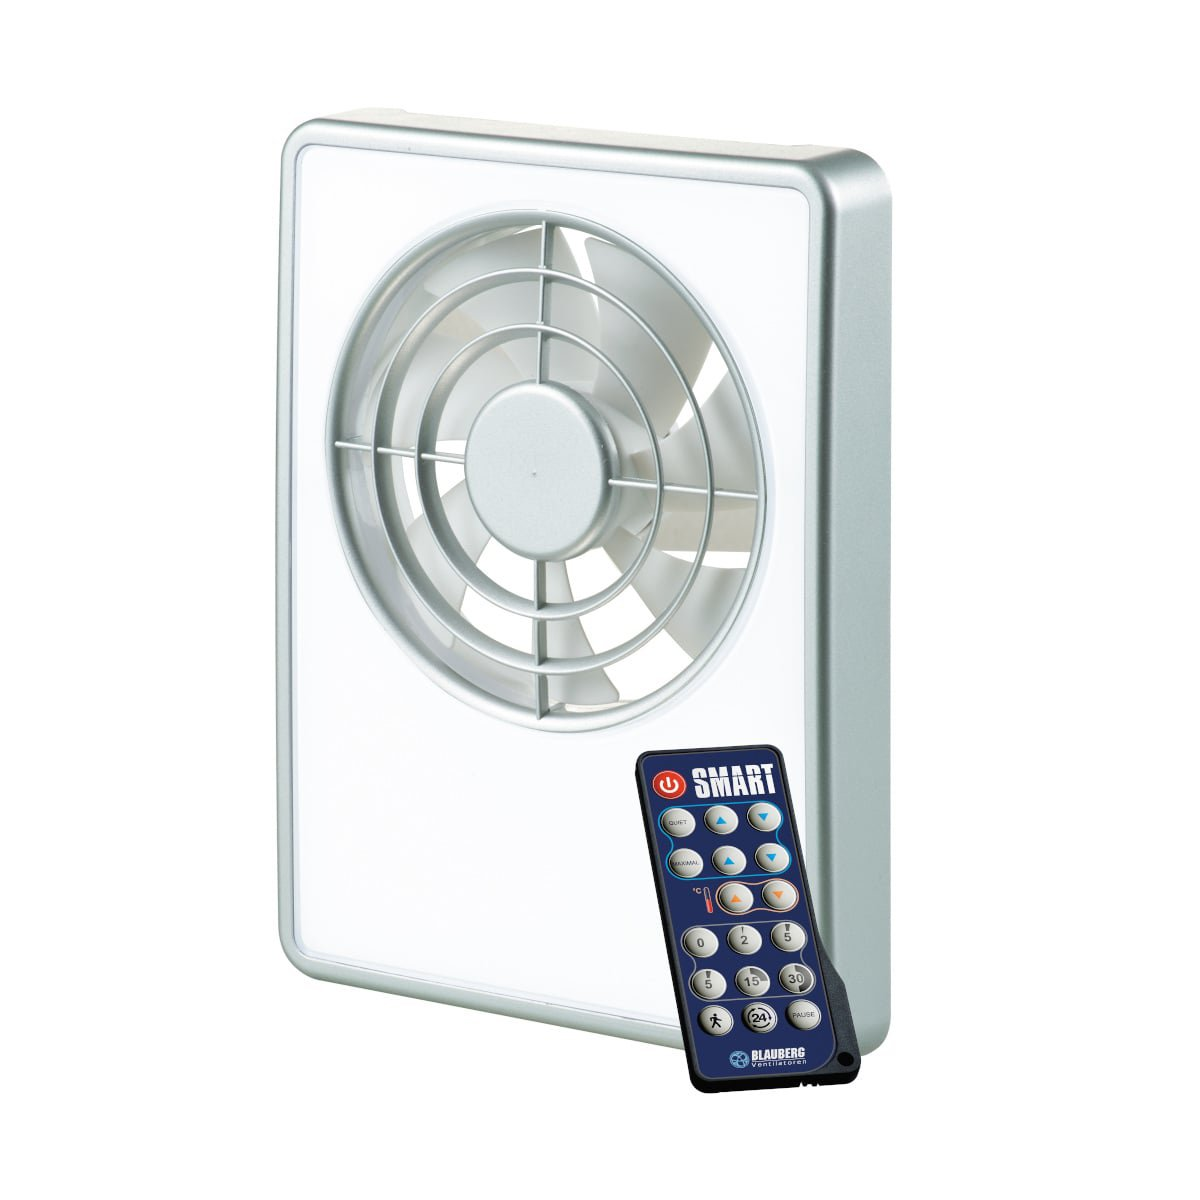 blauberg intelligent exhaust fan with a mode programmer and a smart remote control